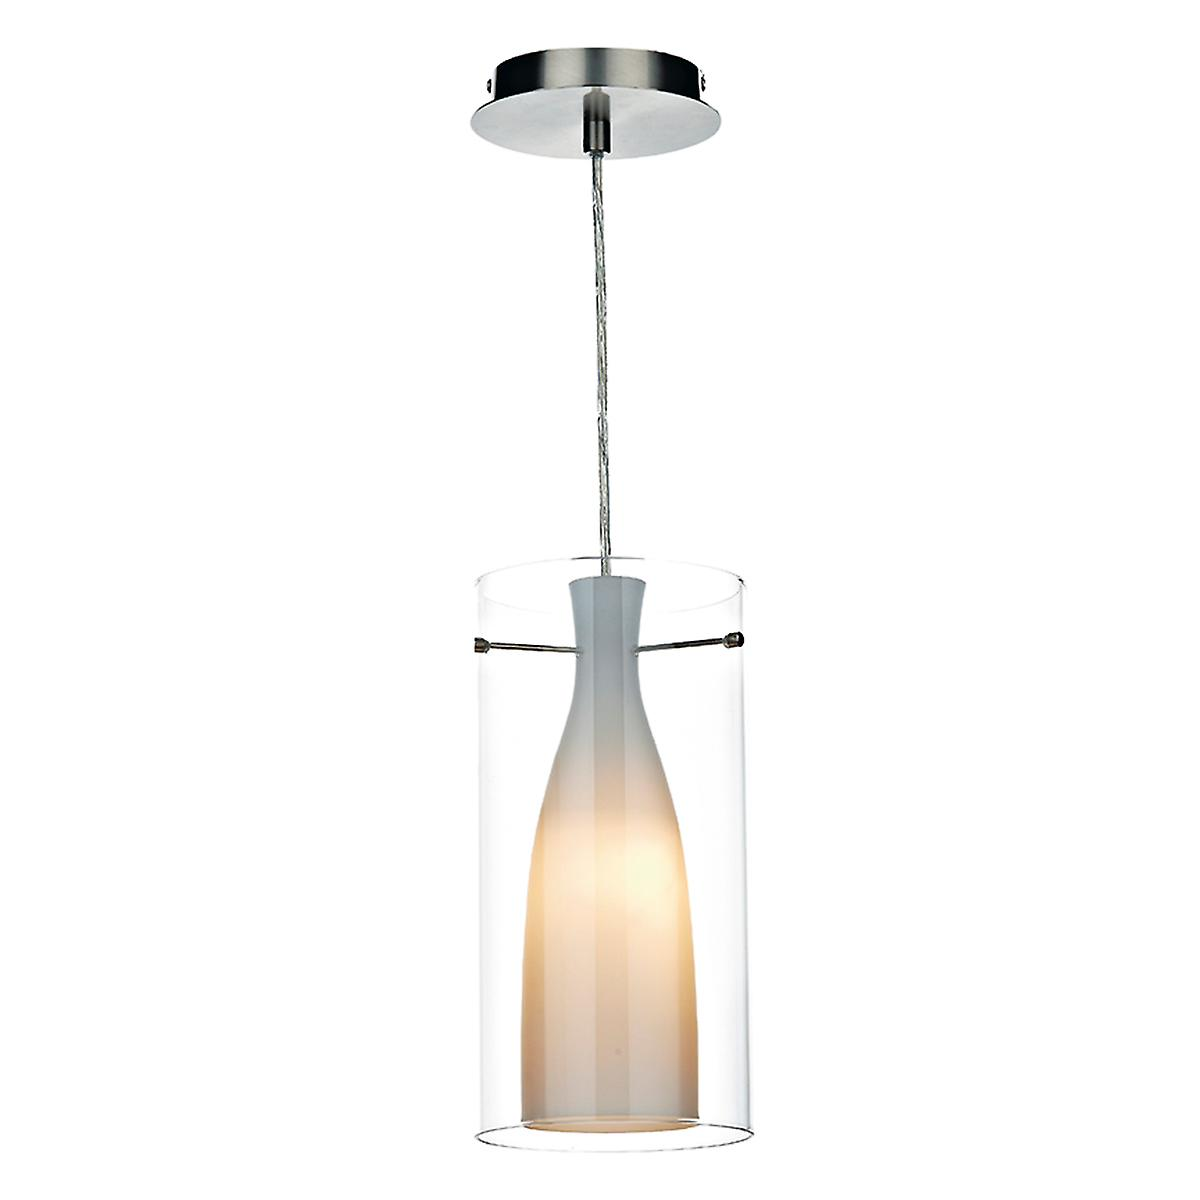 Dar BOD8646 Boda Modern Chrome Single Light Ceiling Pendant With Double Glass